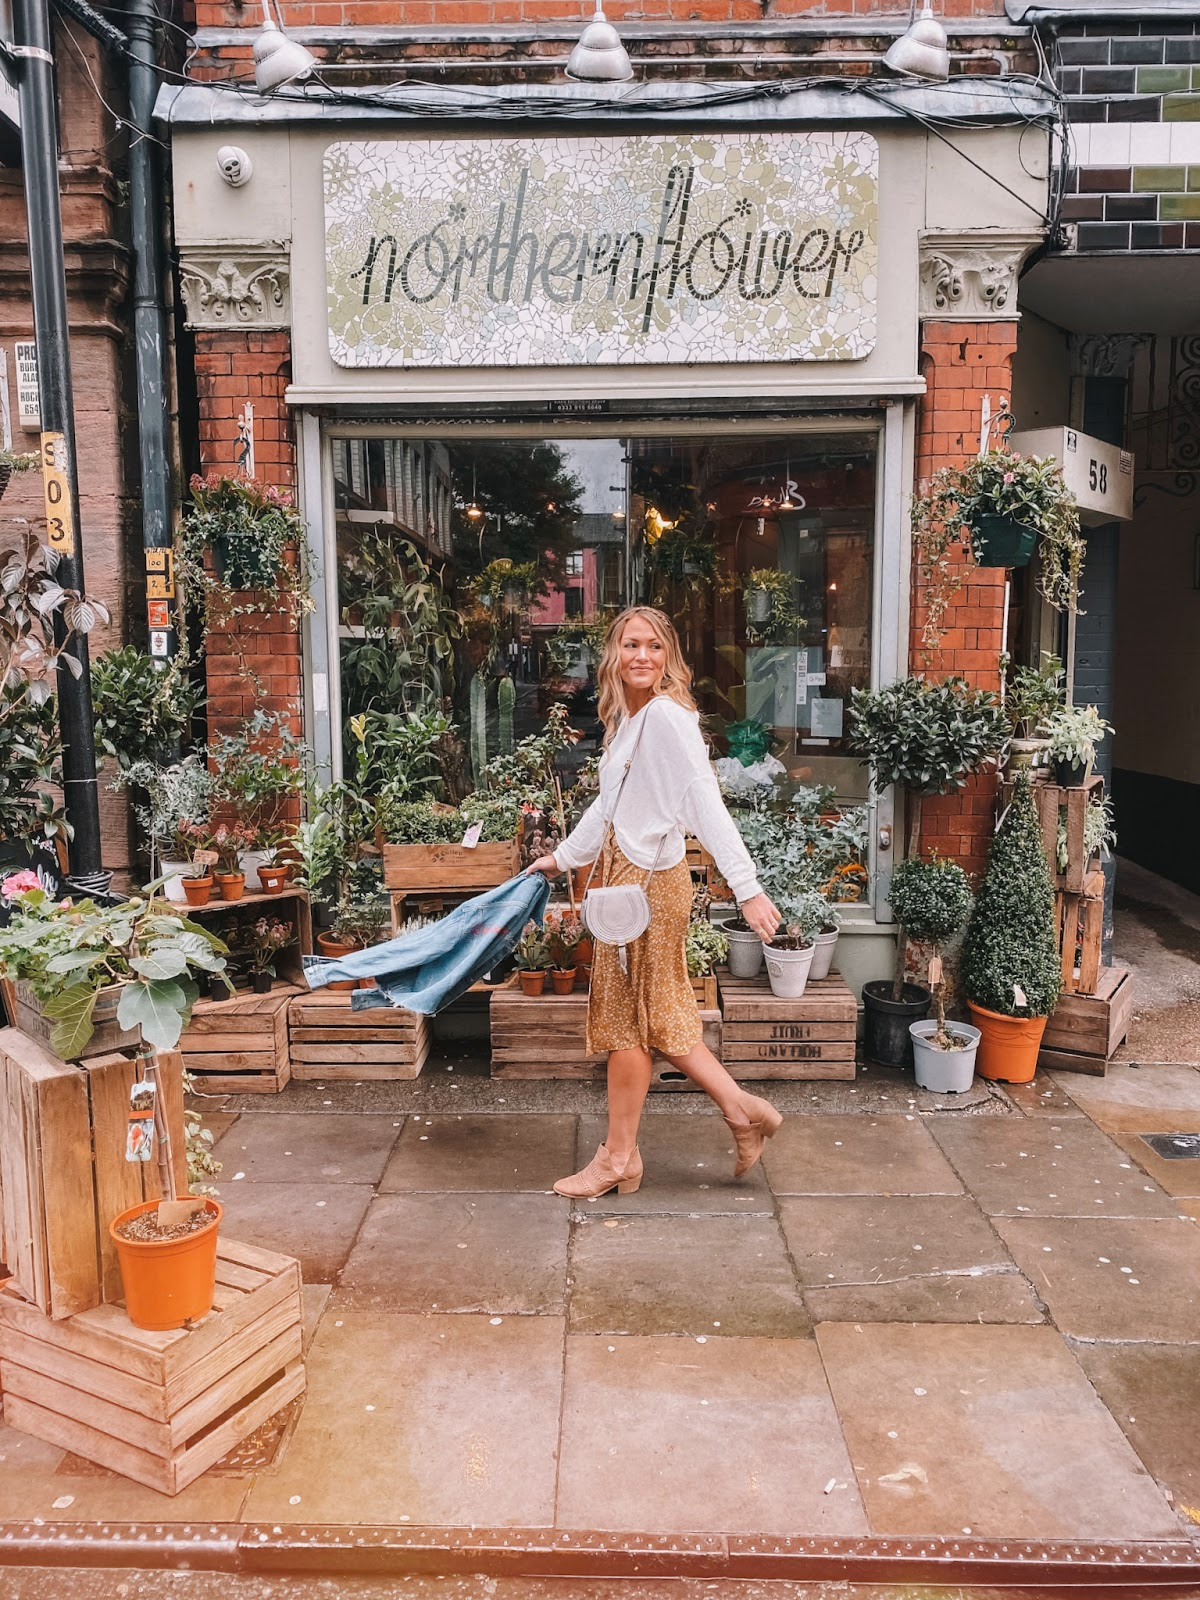 travel blogger Amanda Martin explores the most instagrammable spots in Manchester, UK